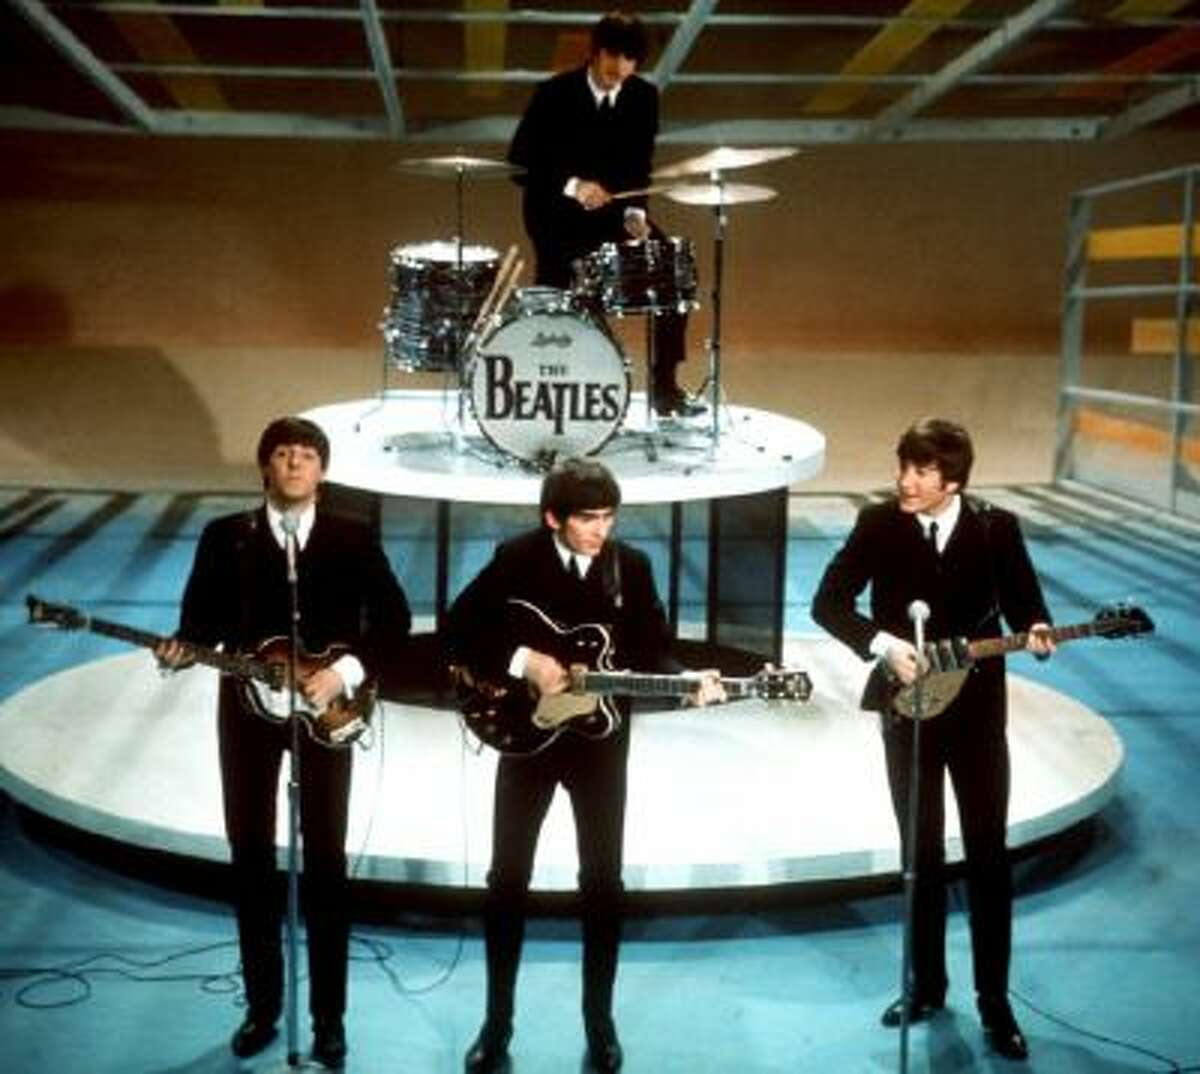 """In this Feb. 9, 1964 photo, The Beatles, from left, Paul McCartney, George Harrison, Ringo Starr on drums, and John Lennon perform on the CBS """"Ed Sullivan Show"""" in New York."""